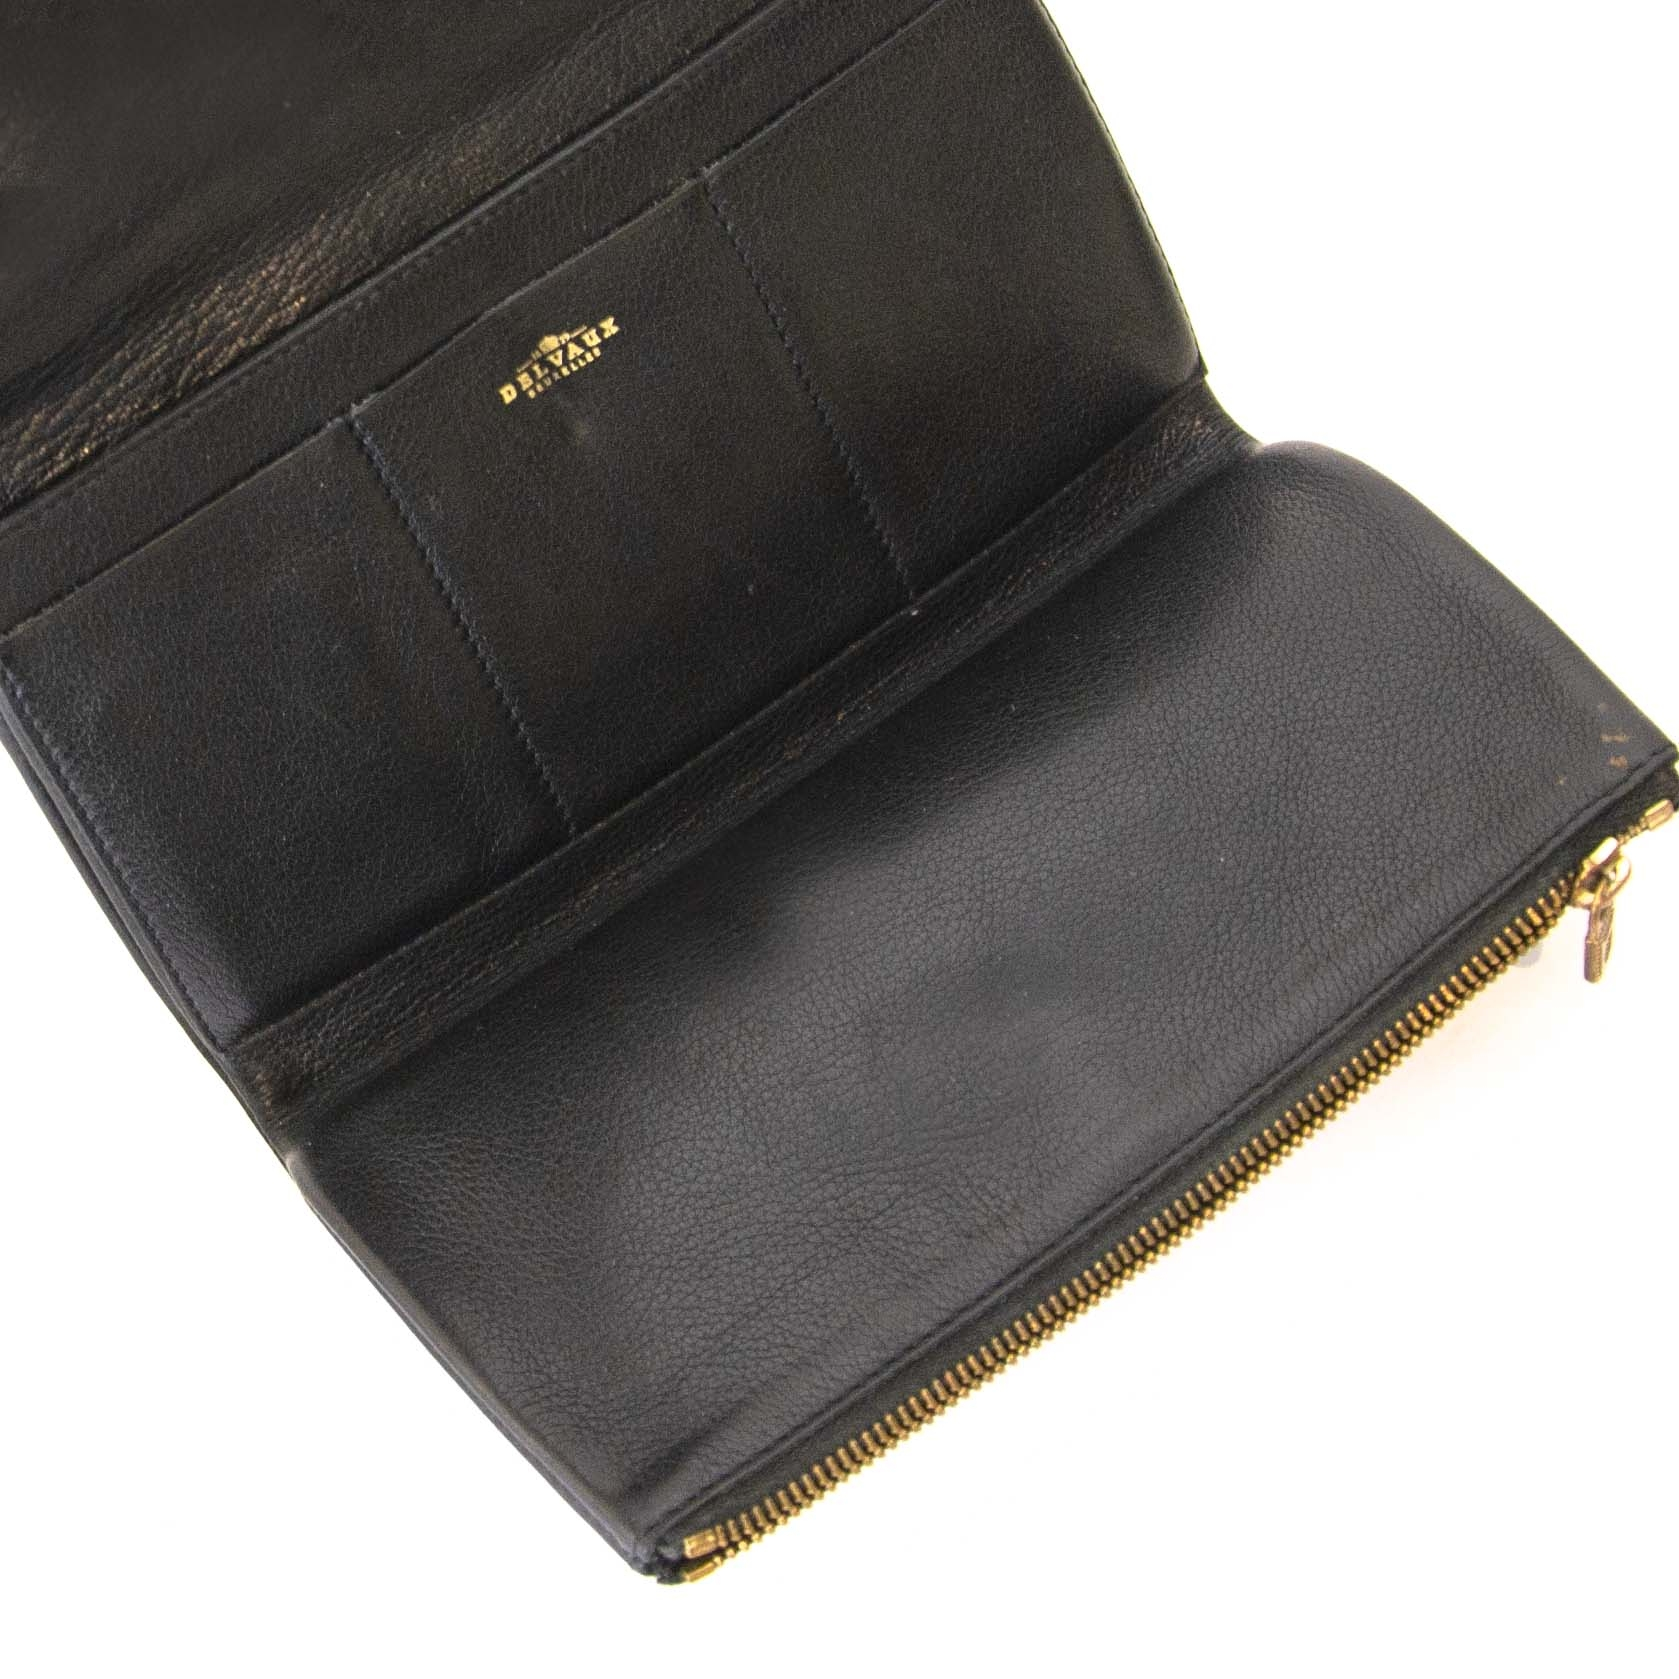 Authentique seconde main vintage Delvaux Black Leather Wallet achète en ligne webshop LabelLOV